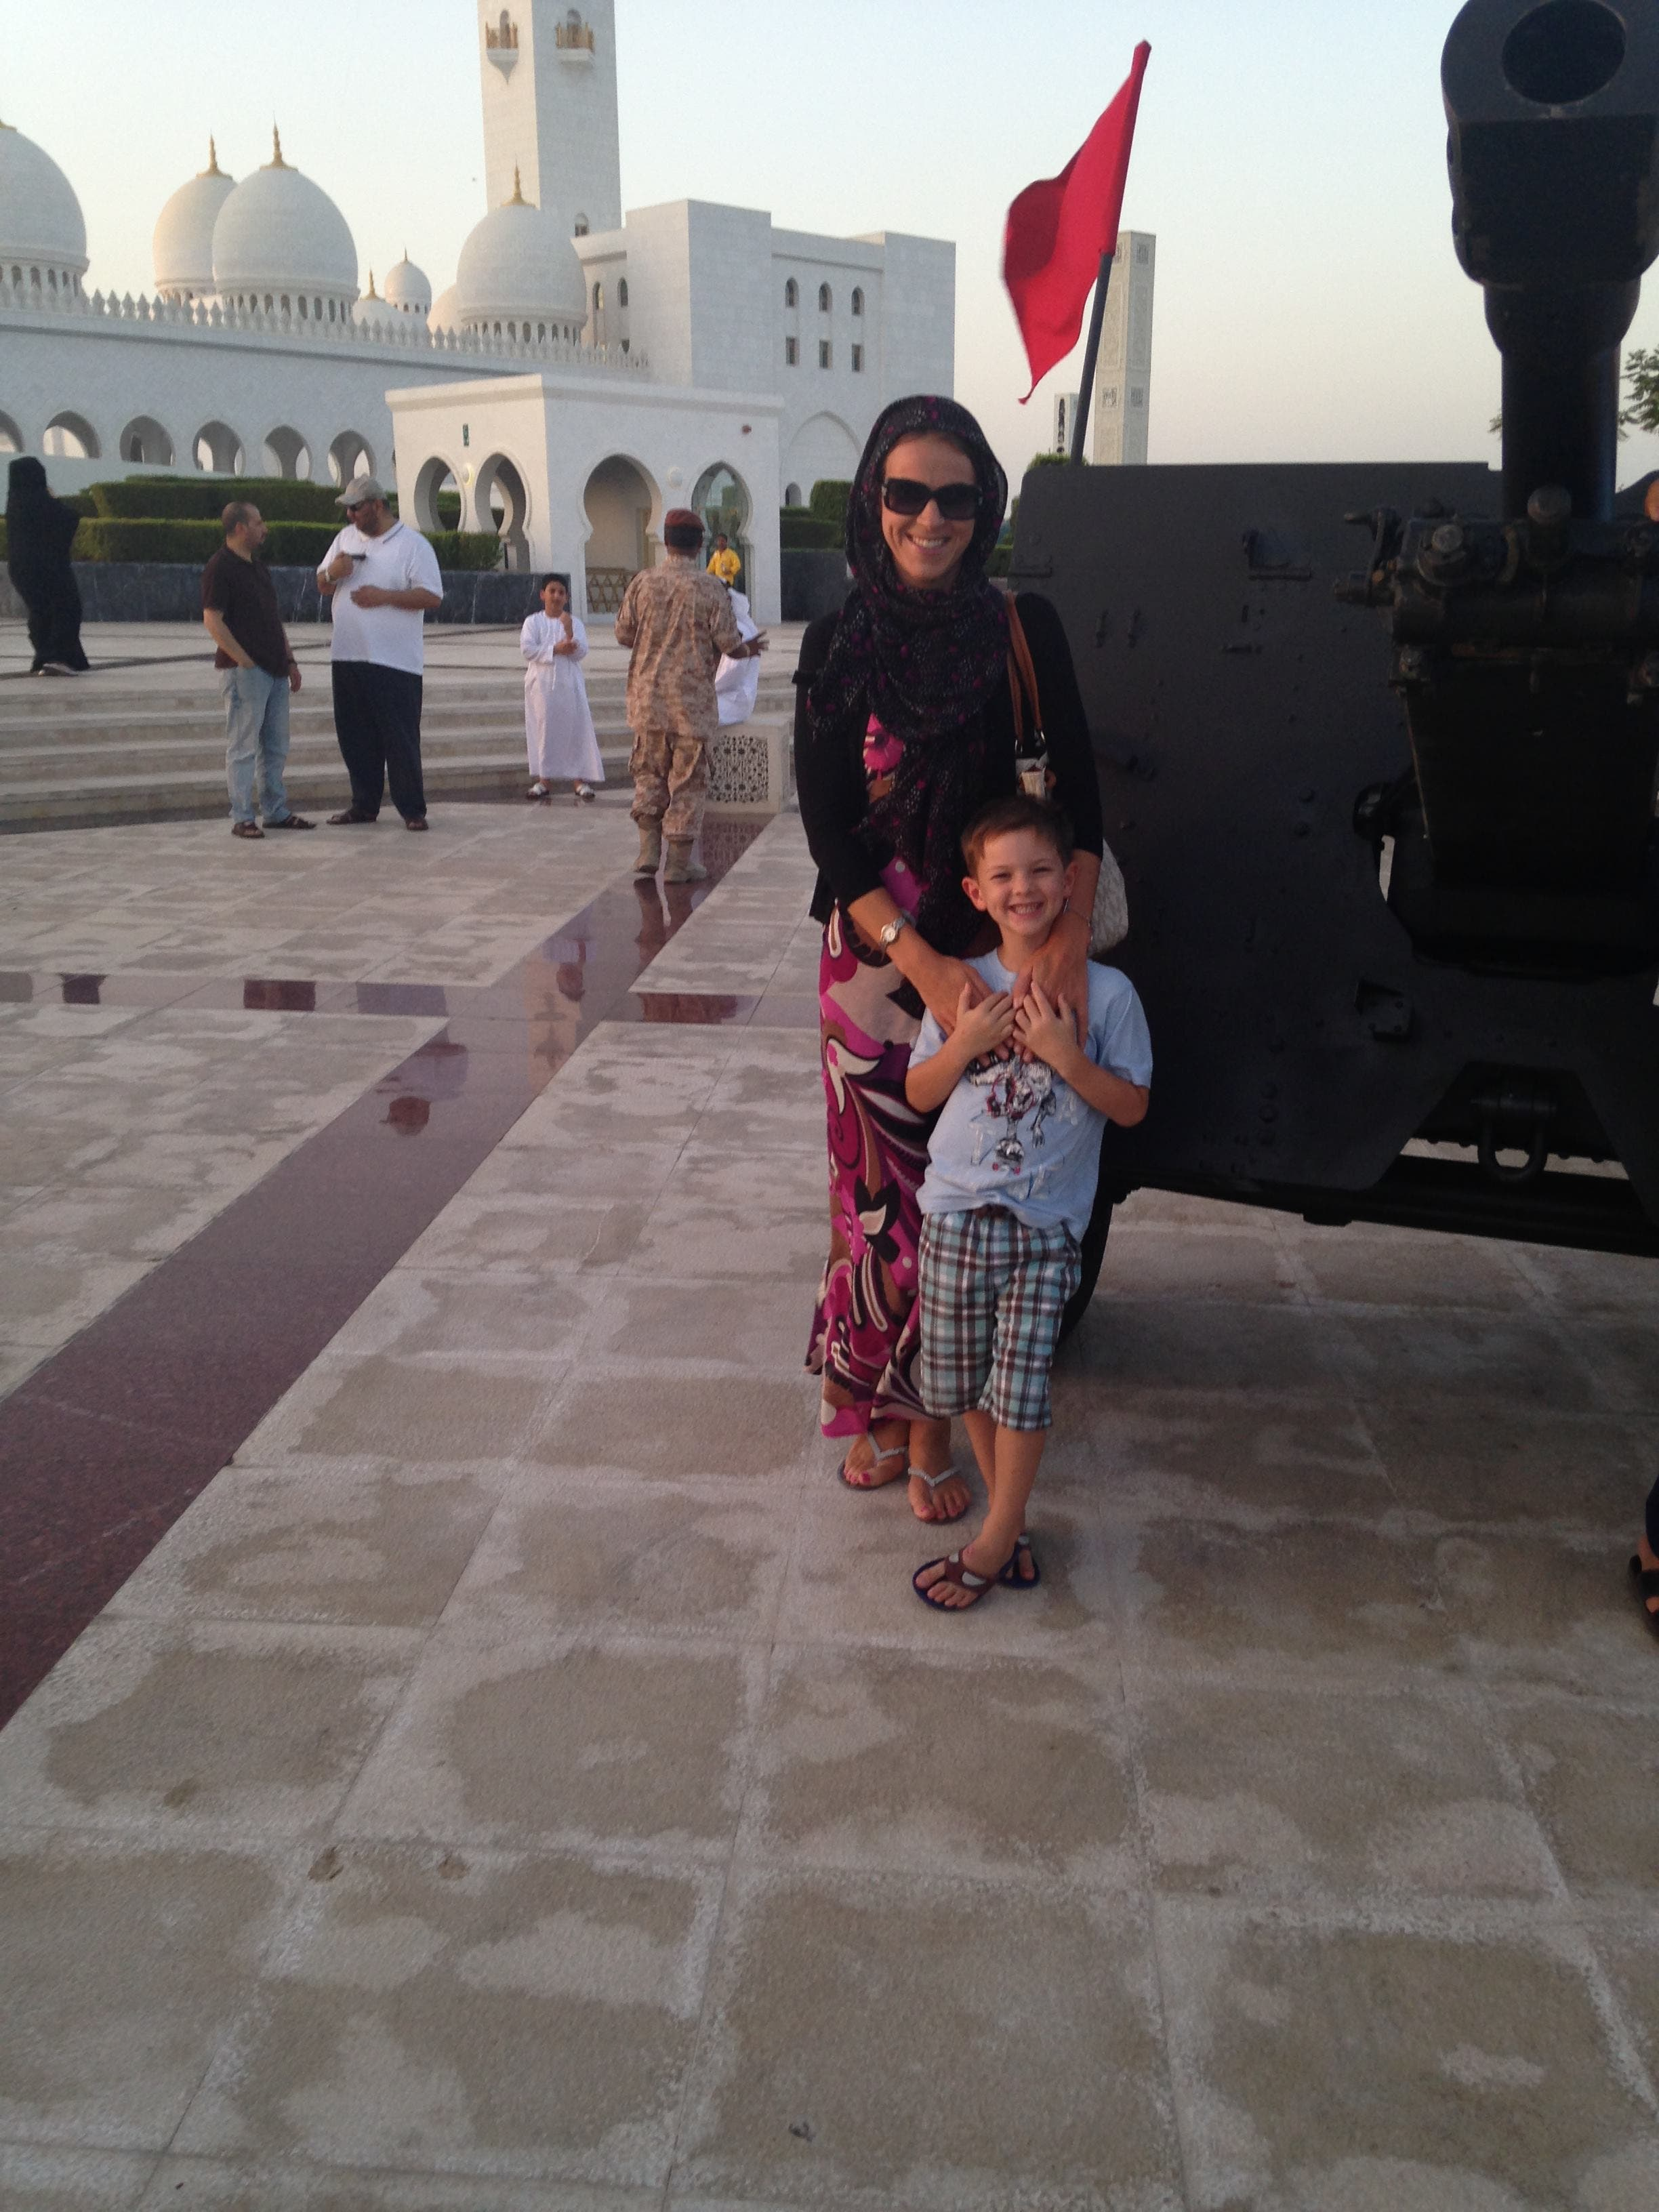 Louise Miles-Shepherd has made it a family tradition to visit the mosque every Ramadan. She is seen here with her 5-year-old son. (Supplied)